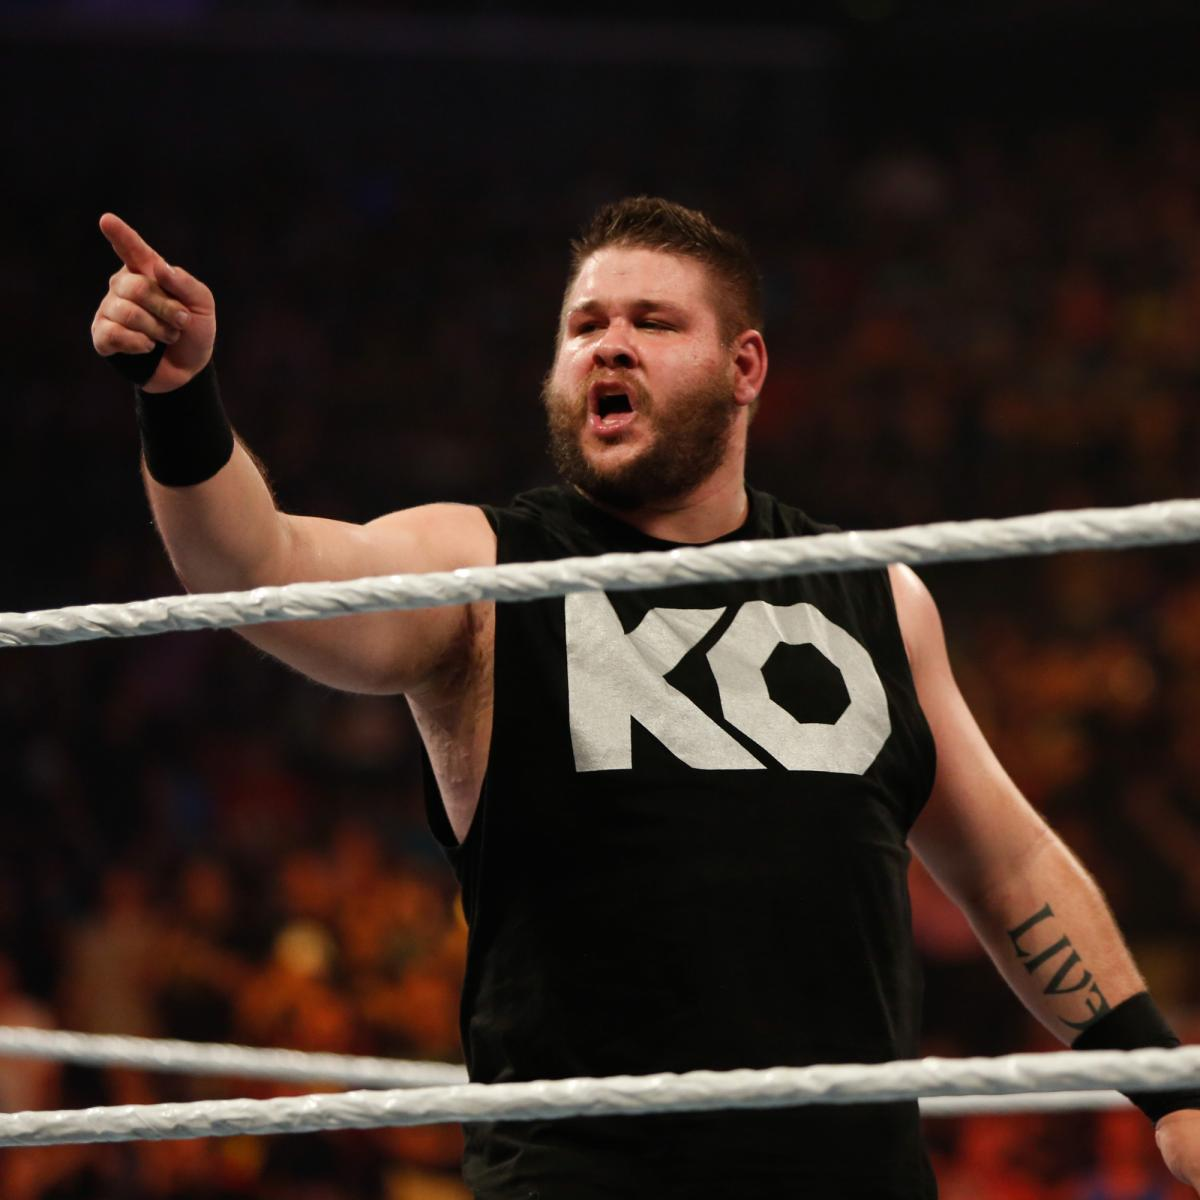 Kevin Owens Responds To Speculation About Leaked Nude